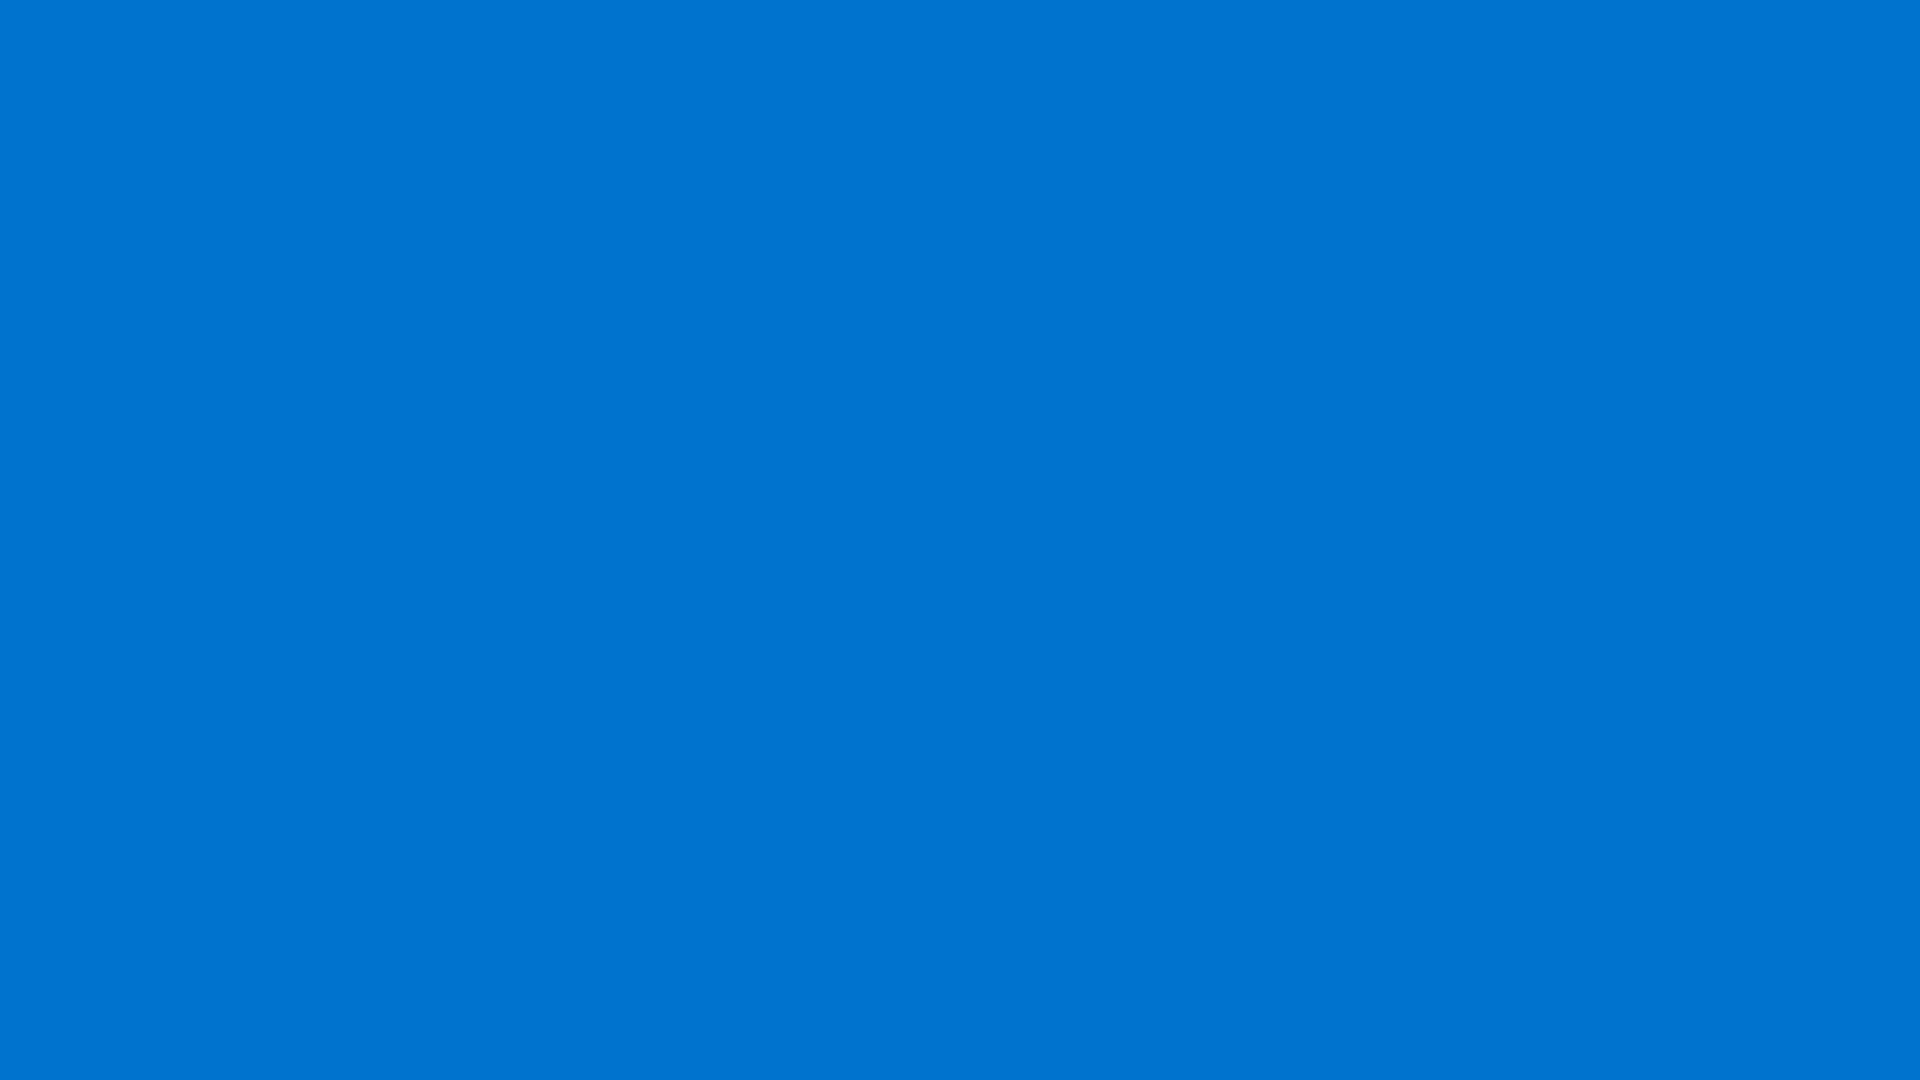 1920x1080 True Blue Solid Color Background 1920x1080